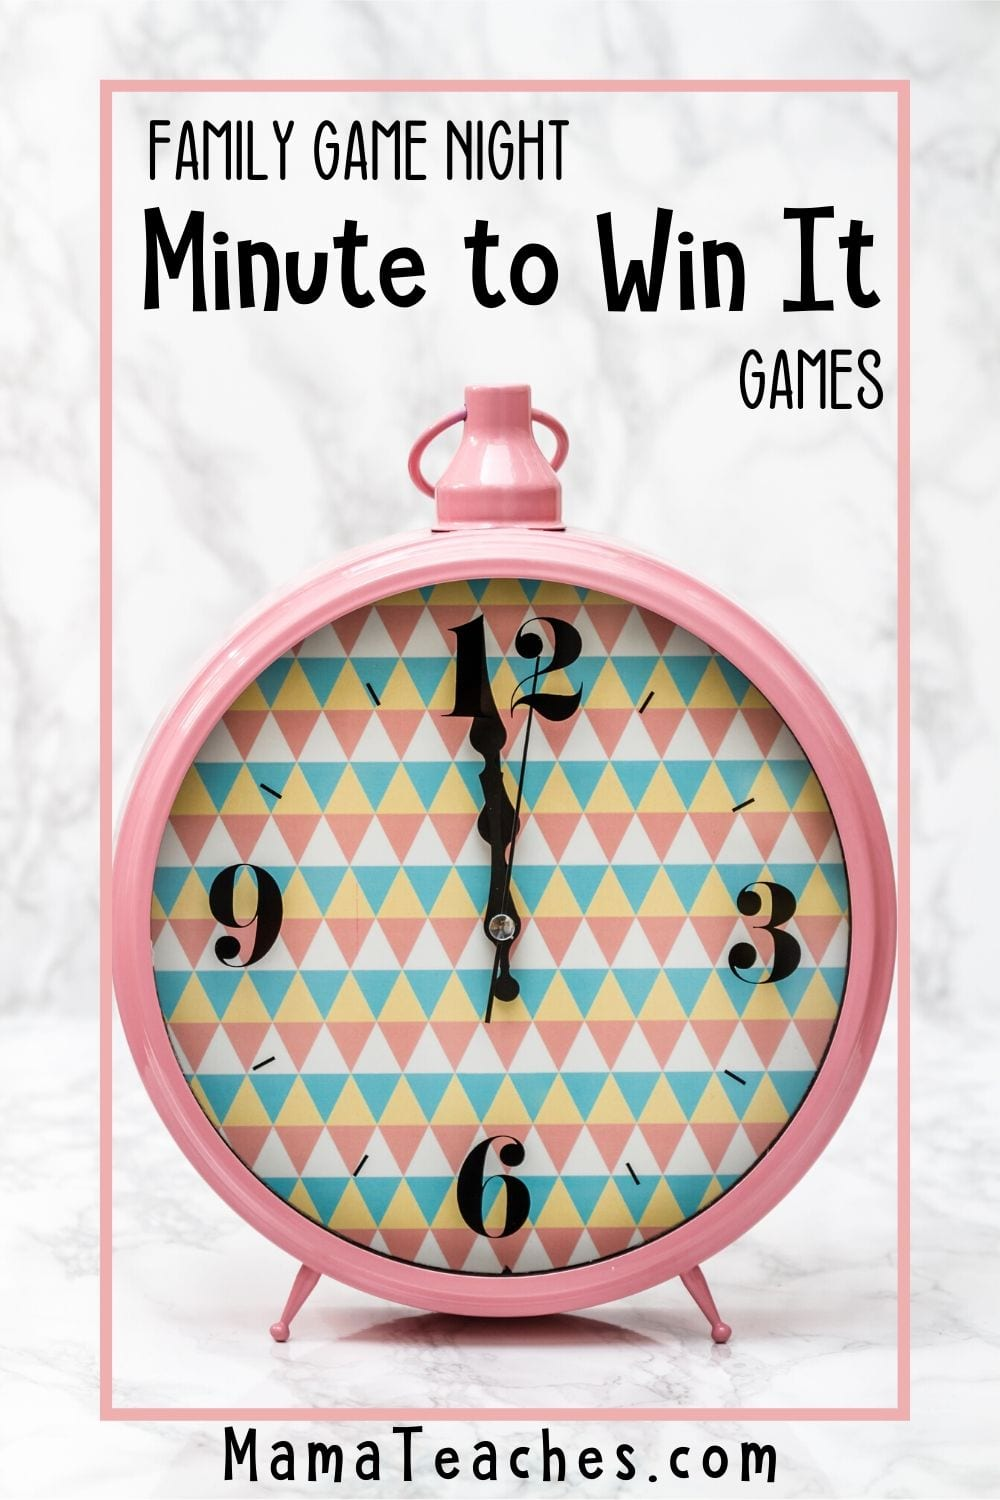 Family Game Night Minute to Win It Games - 10 Hilariously Fun Games - MamaTeaches.com